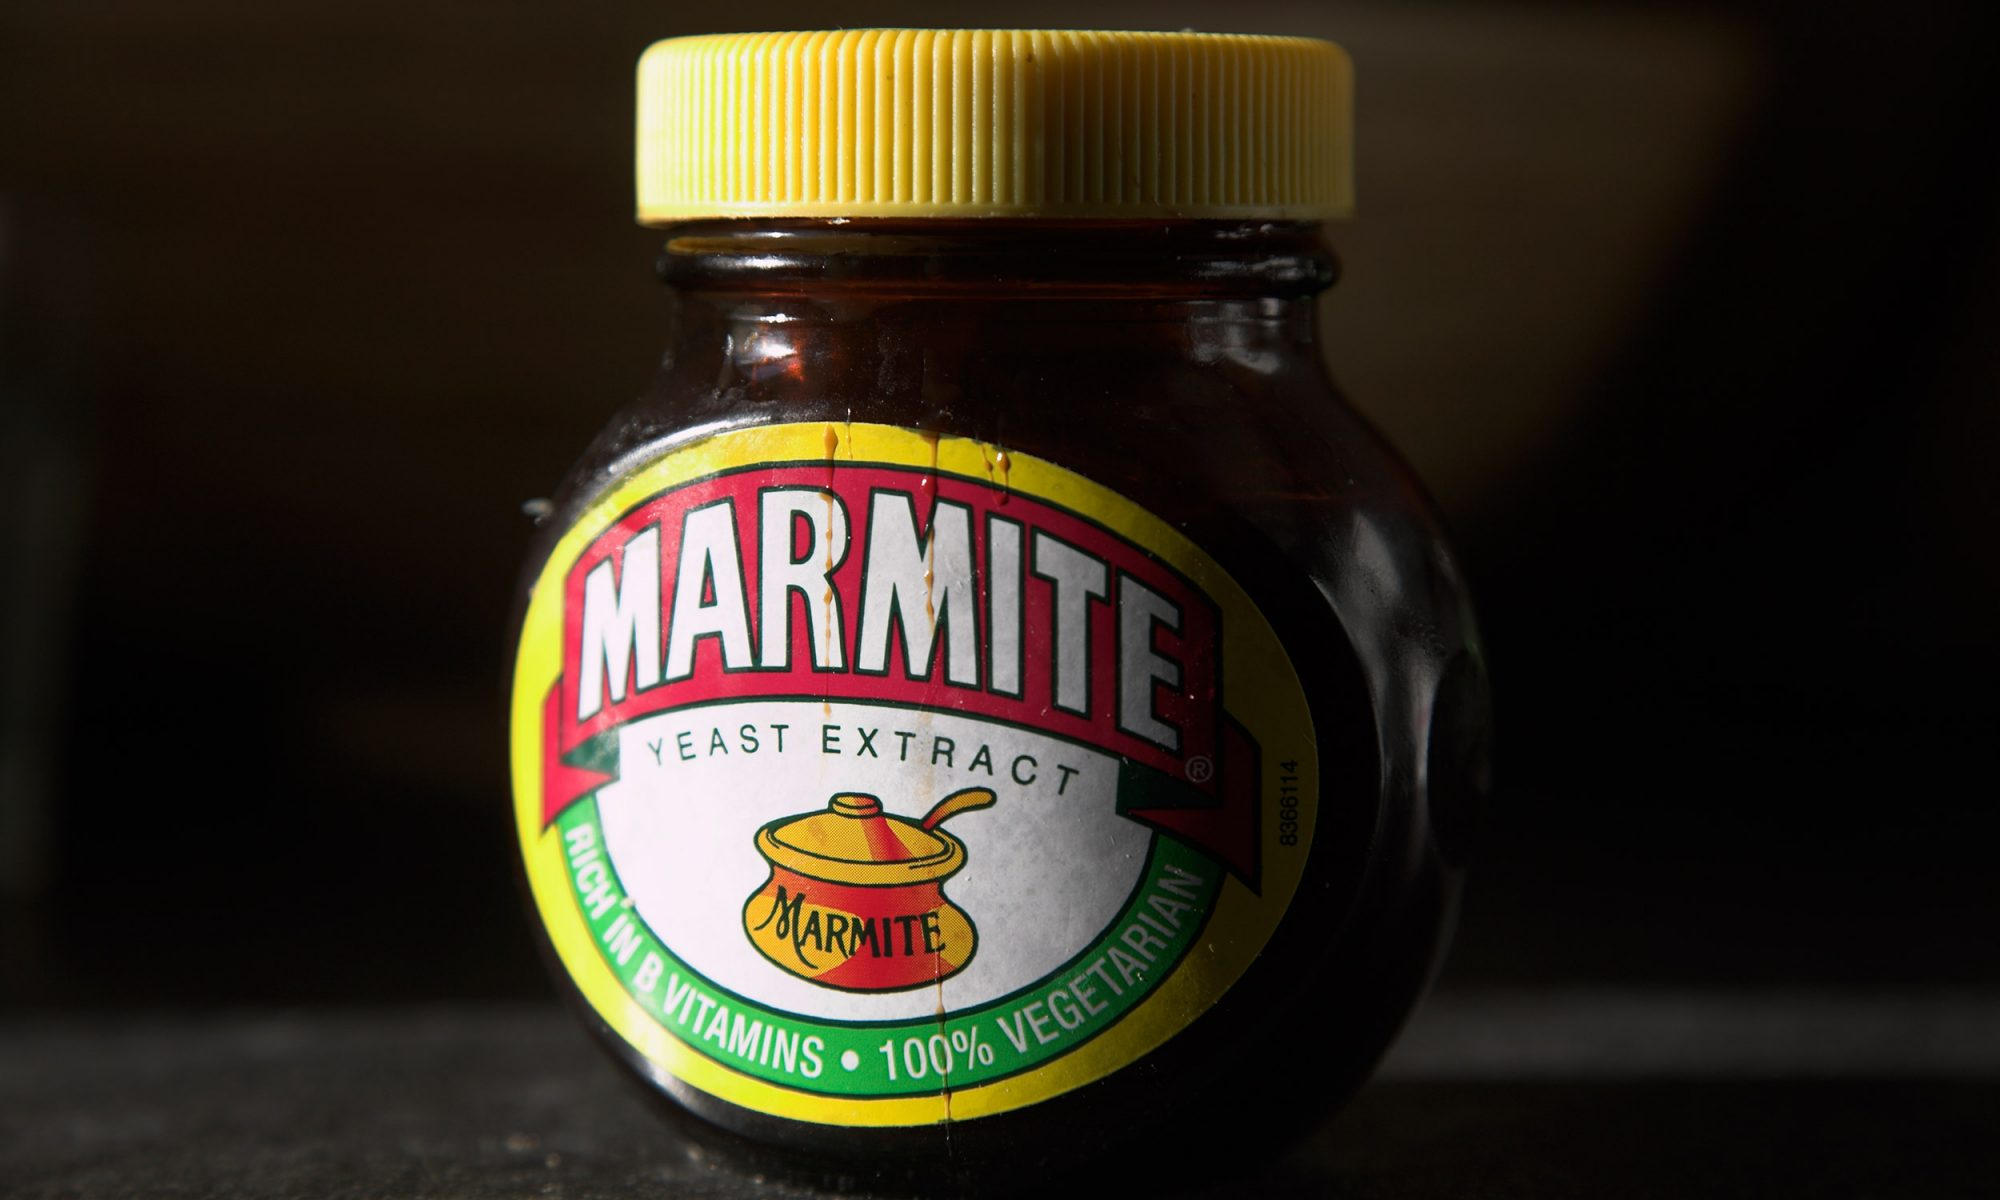 EC: British Supermarkets Are Running Out of Marmite Because of Brexit